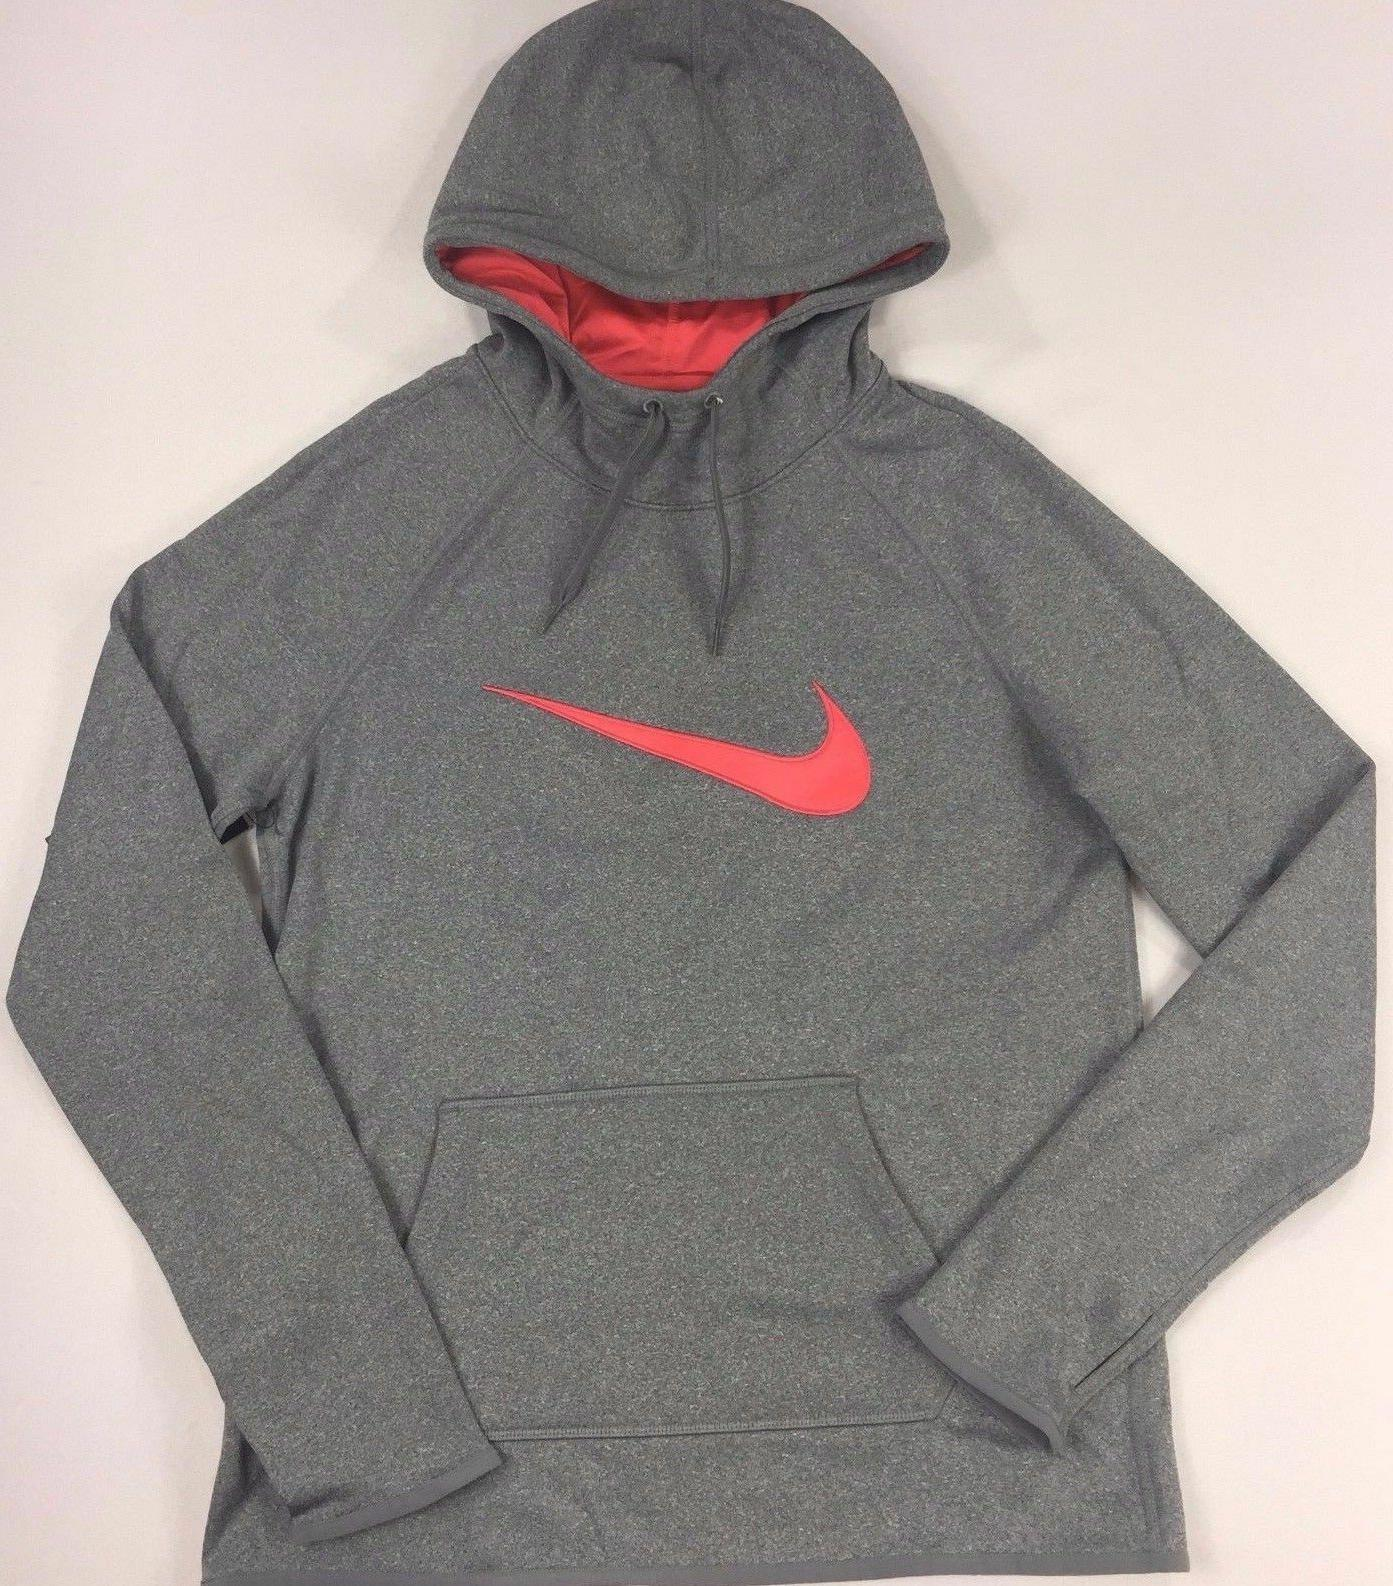 Women's Nike Therma Dri Fit Lightweight Athletic Hoodie Size XS